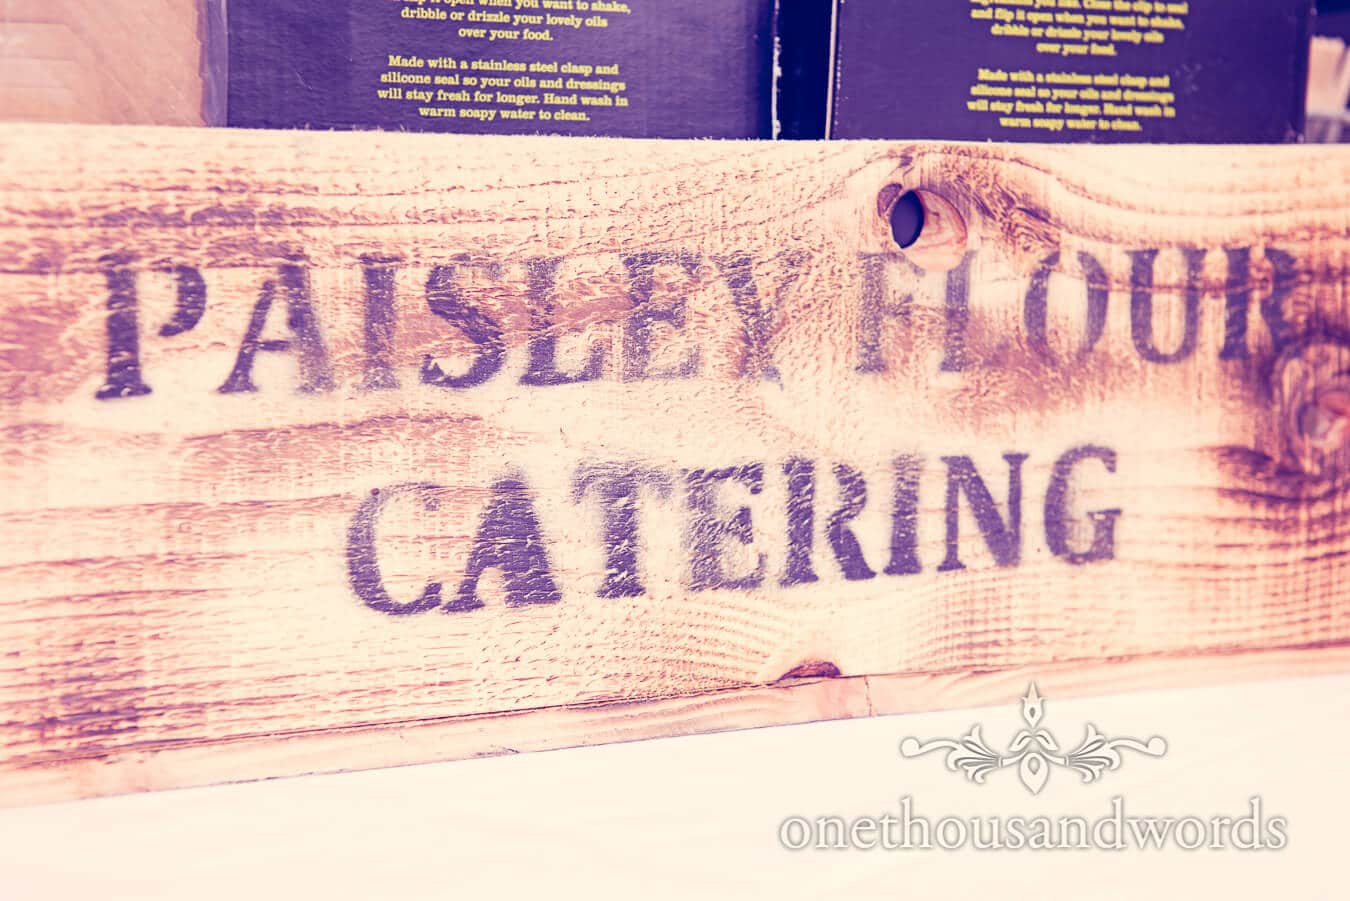 Paisley Flour Catering wedding caterers wooden box with logo stamp